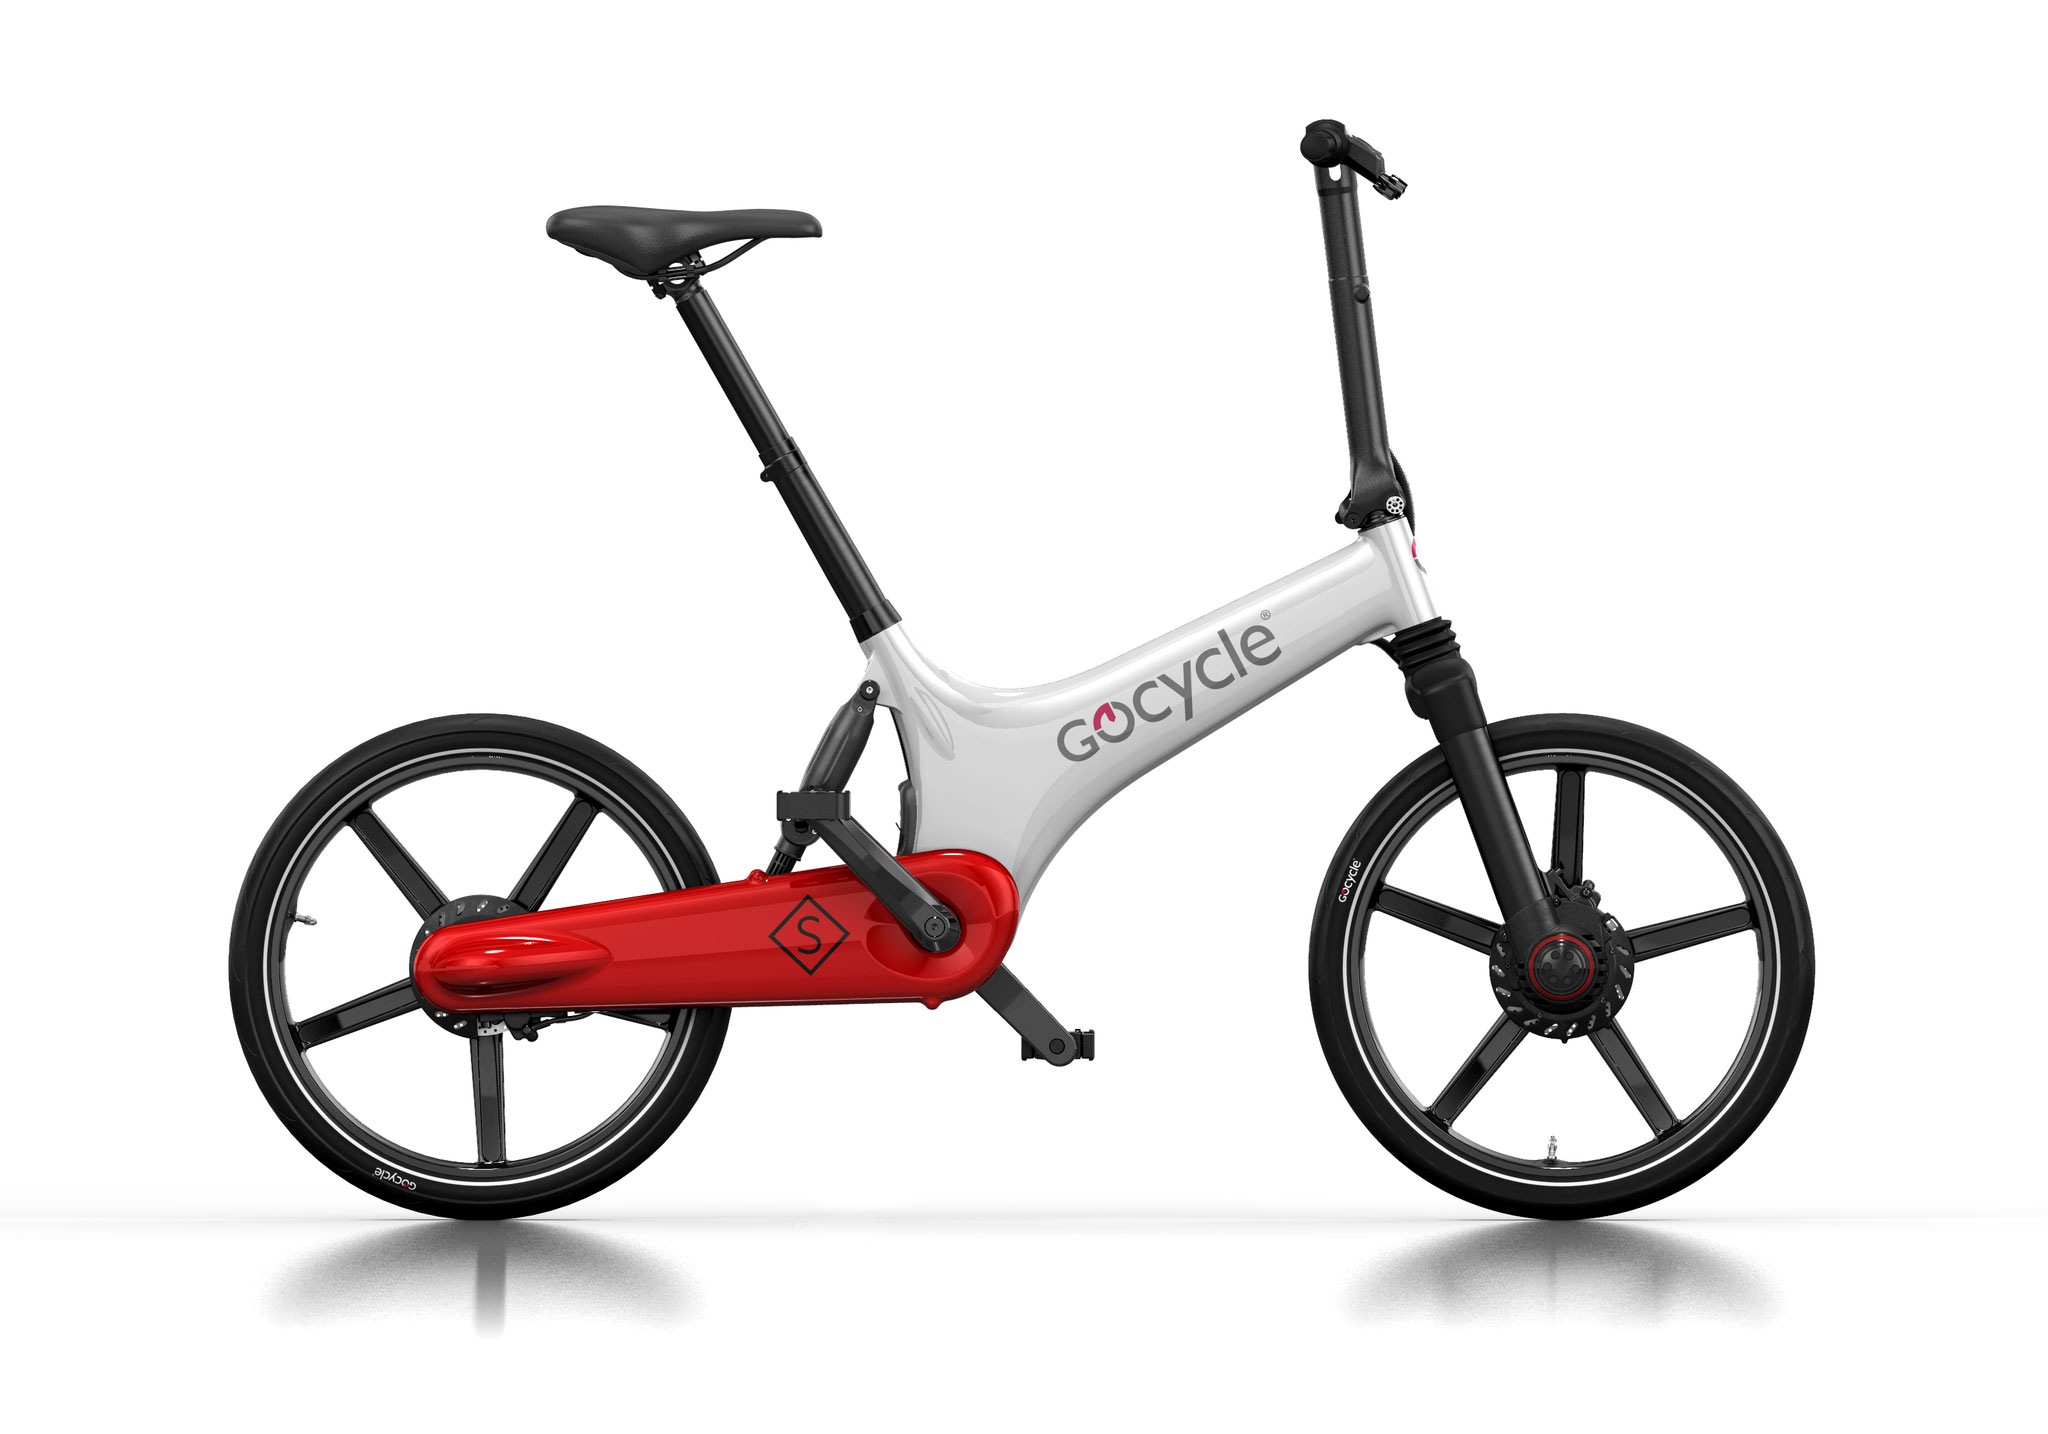 Gocycle GS